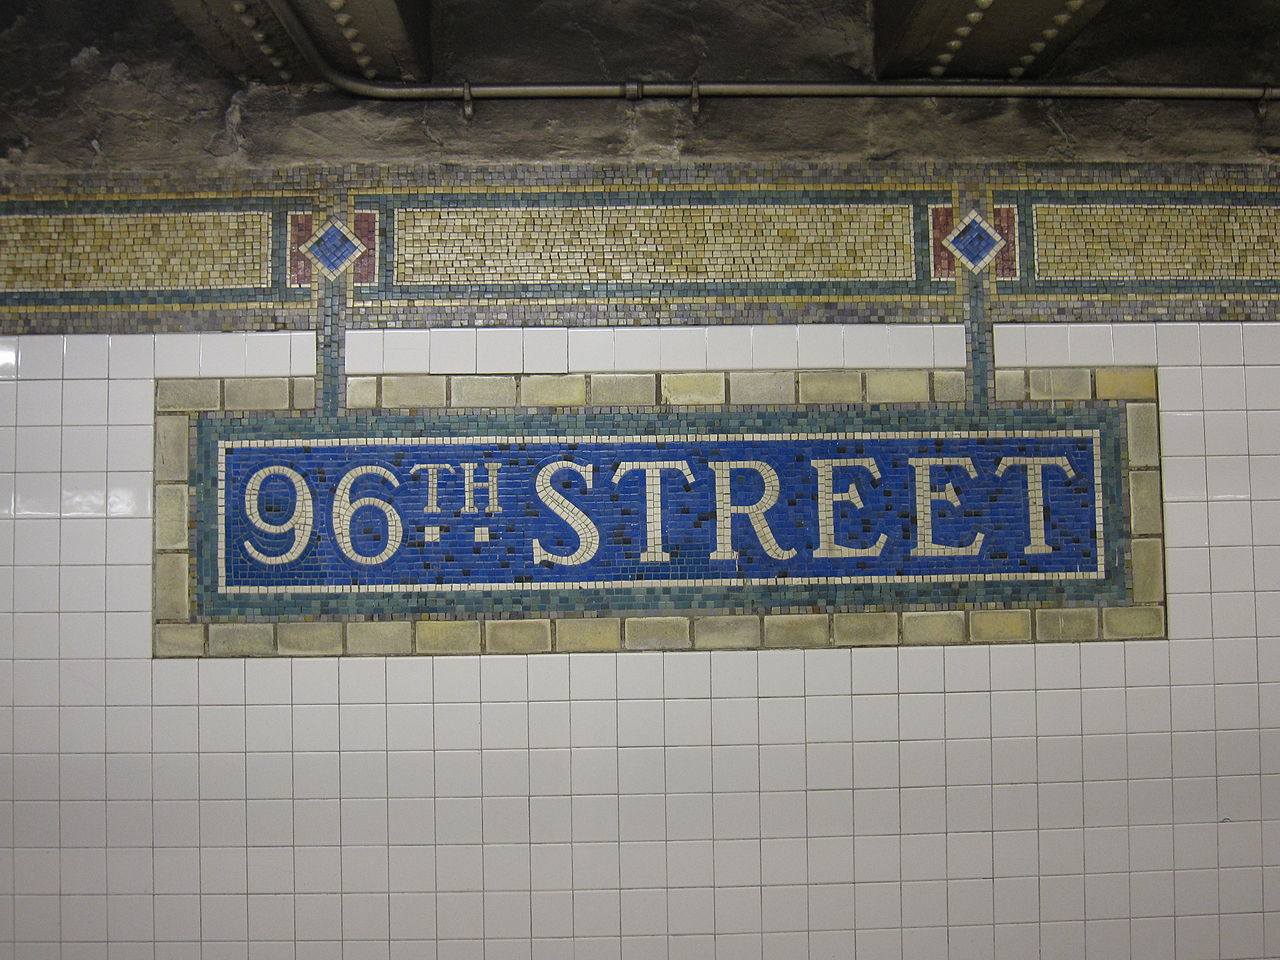 96th Street Irt Lexington Avenue Line